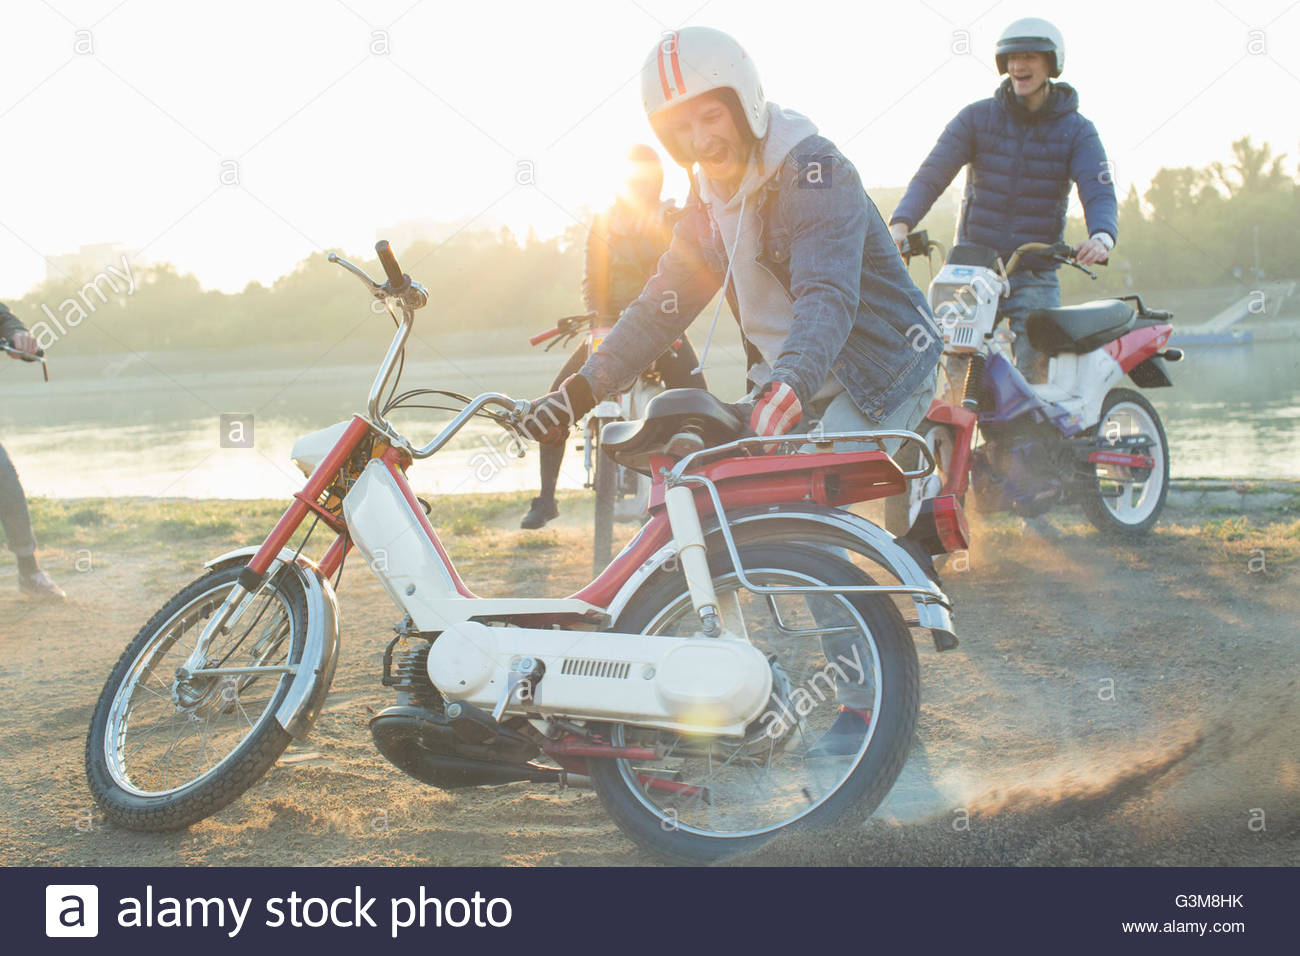 Small group of friends riding mopeds near lake - Stock Image